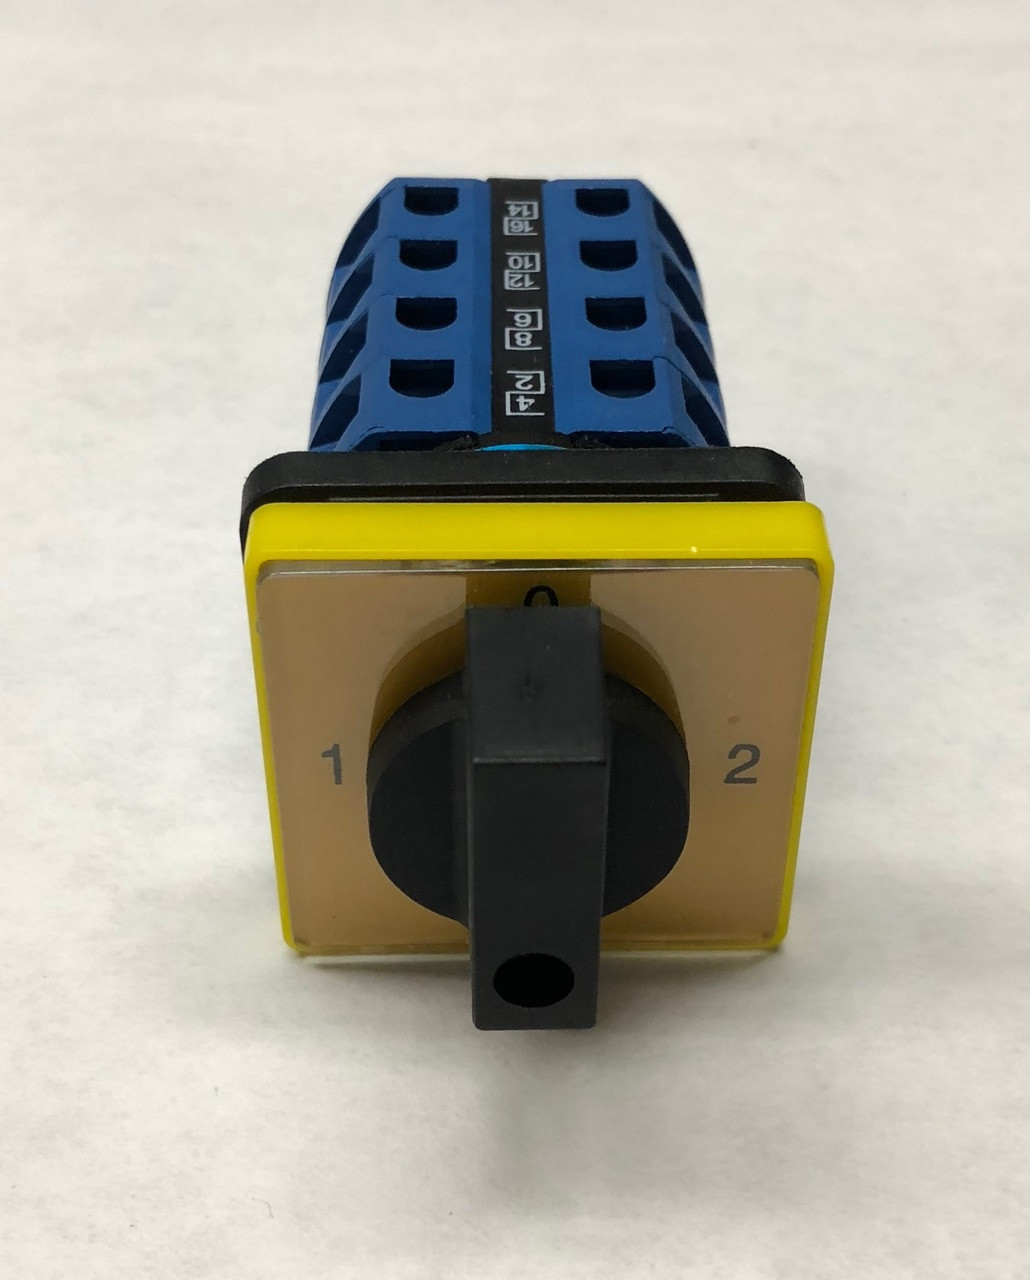 16 Lead Switch